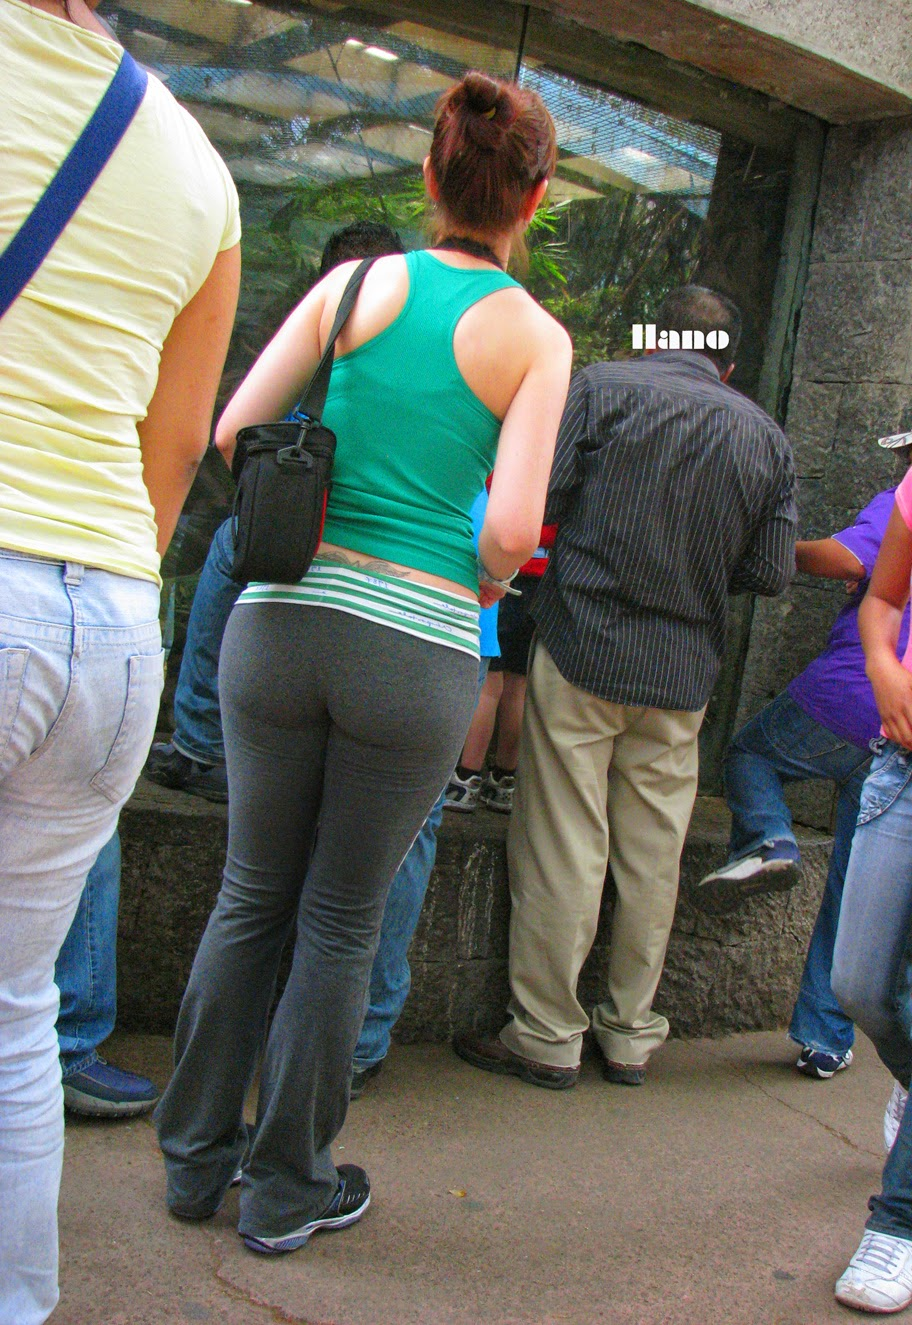 Asses tight jeans shorts butts cameltoes 44 - 4 7